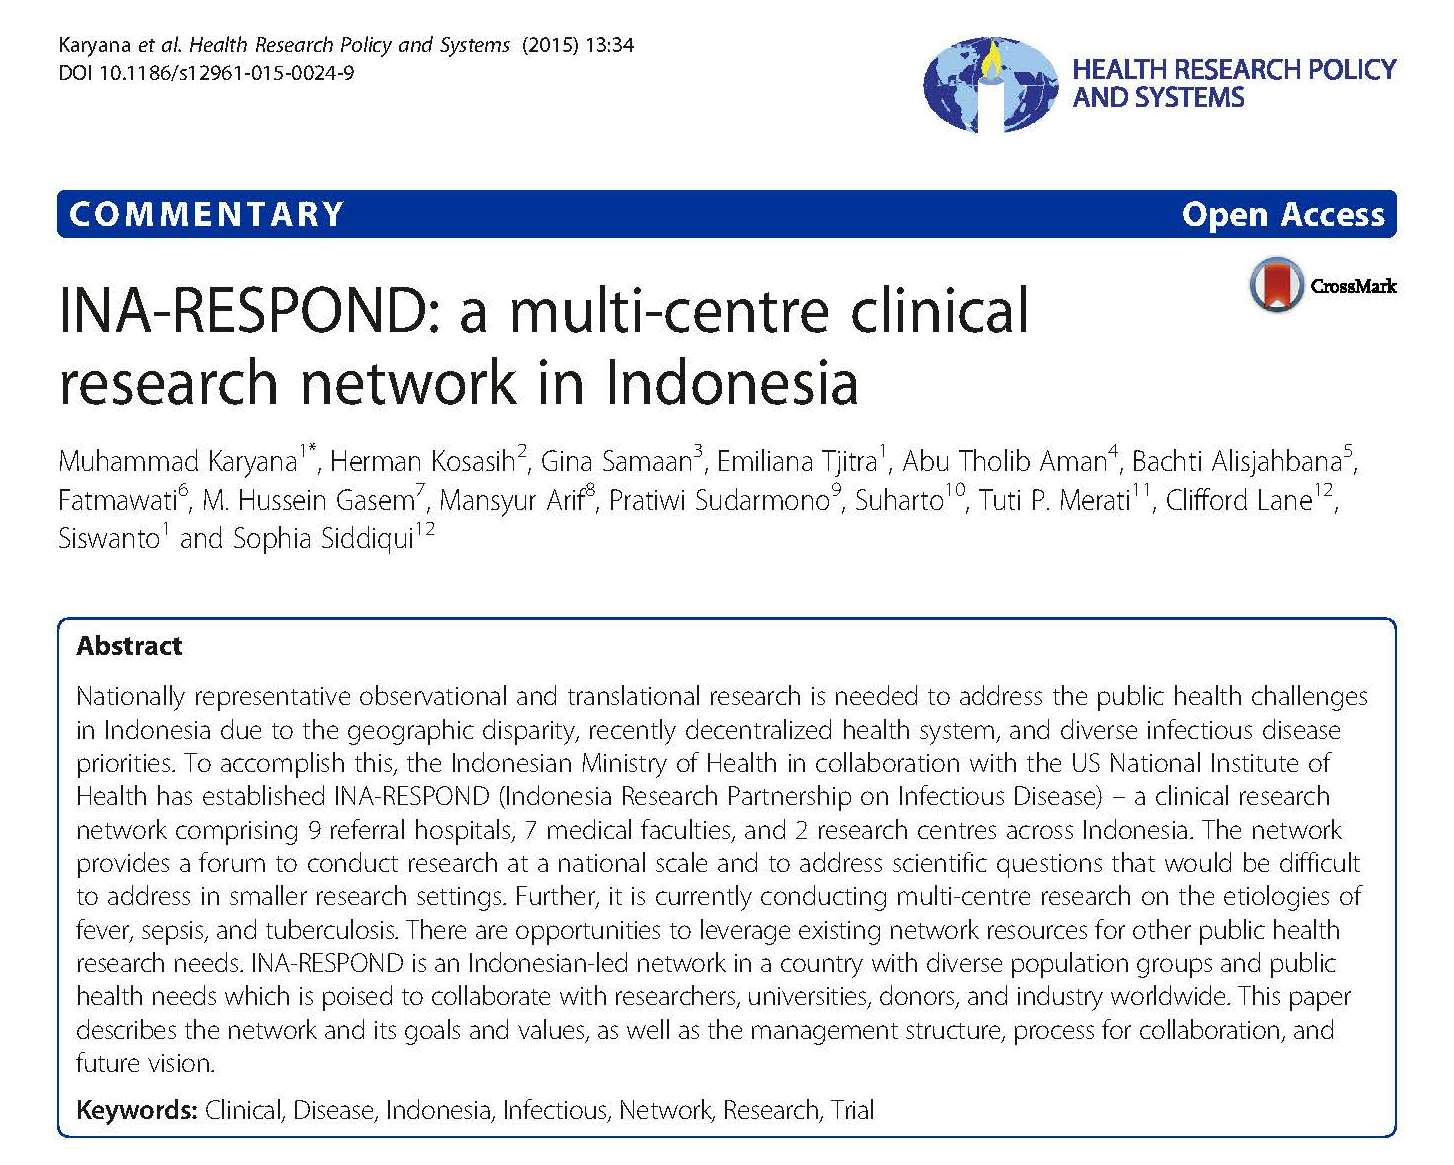 INA-RESPOND a multi-centre clinical research network in Indonesia